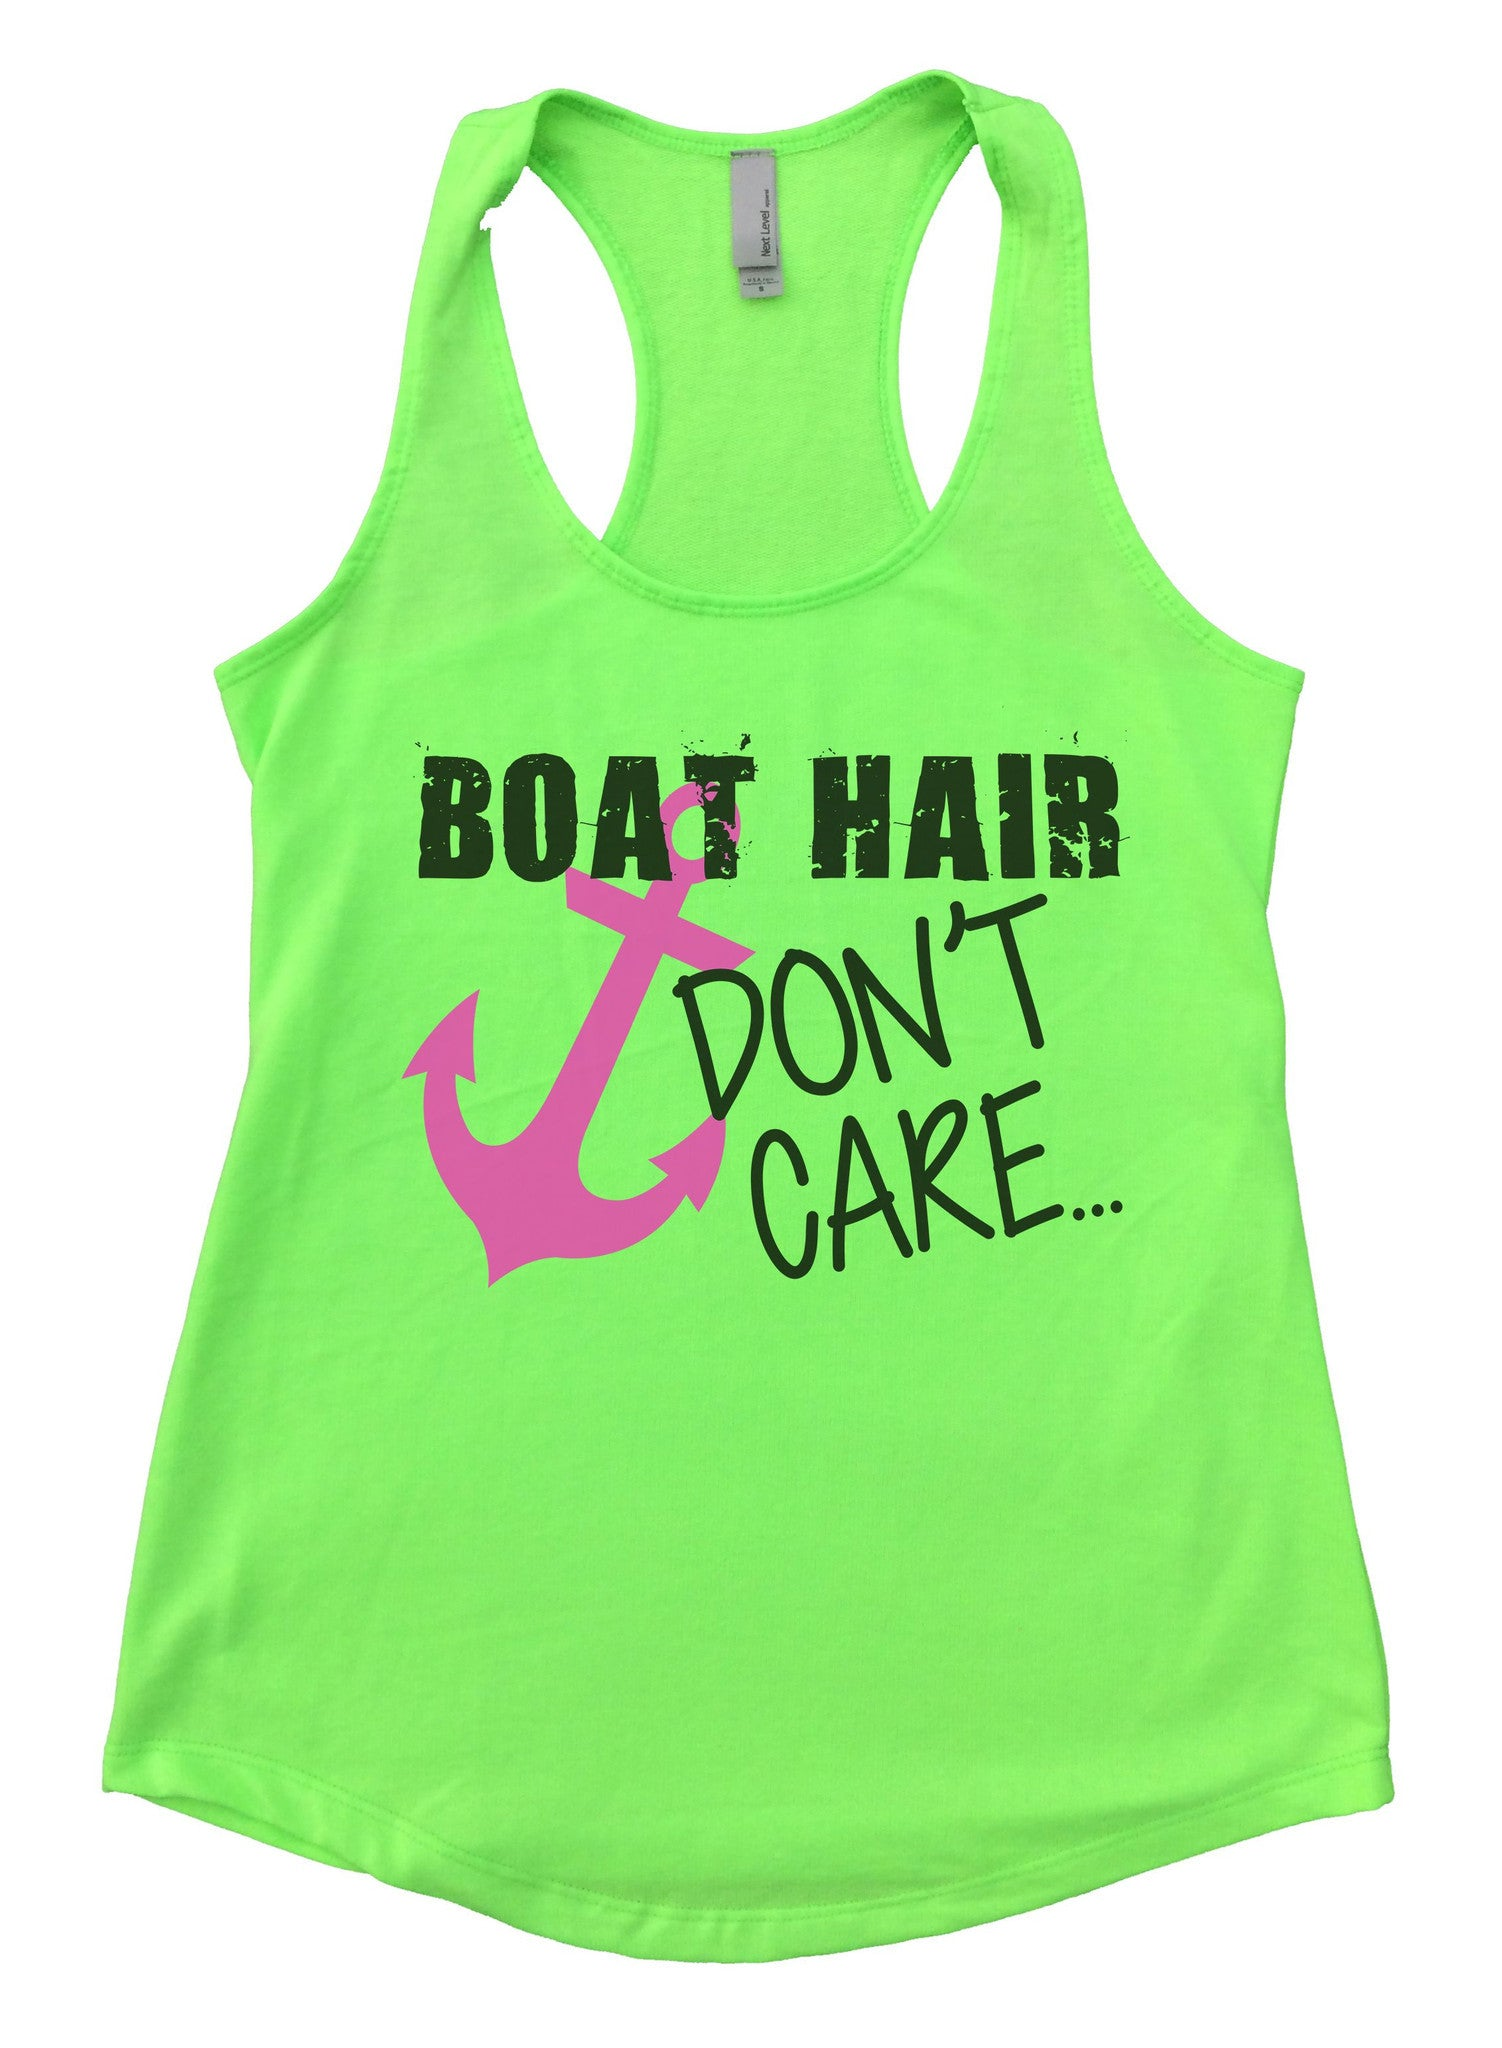 Boat Hair Don't Care Womens Workout Tank Top F691 - Funny Shirts Tank Tops Burnouts and Triblends  - 1